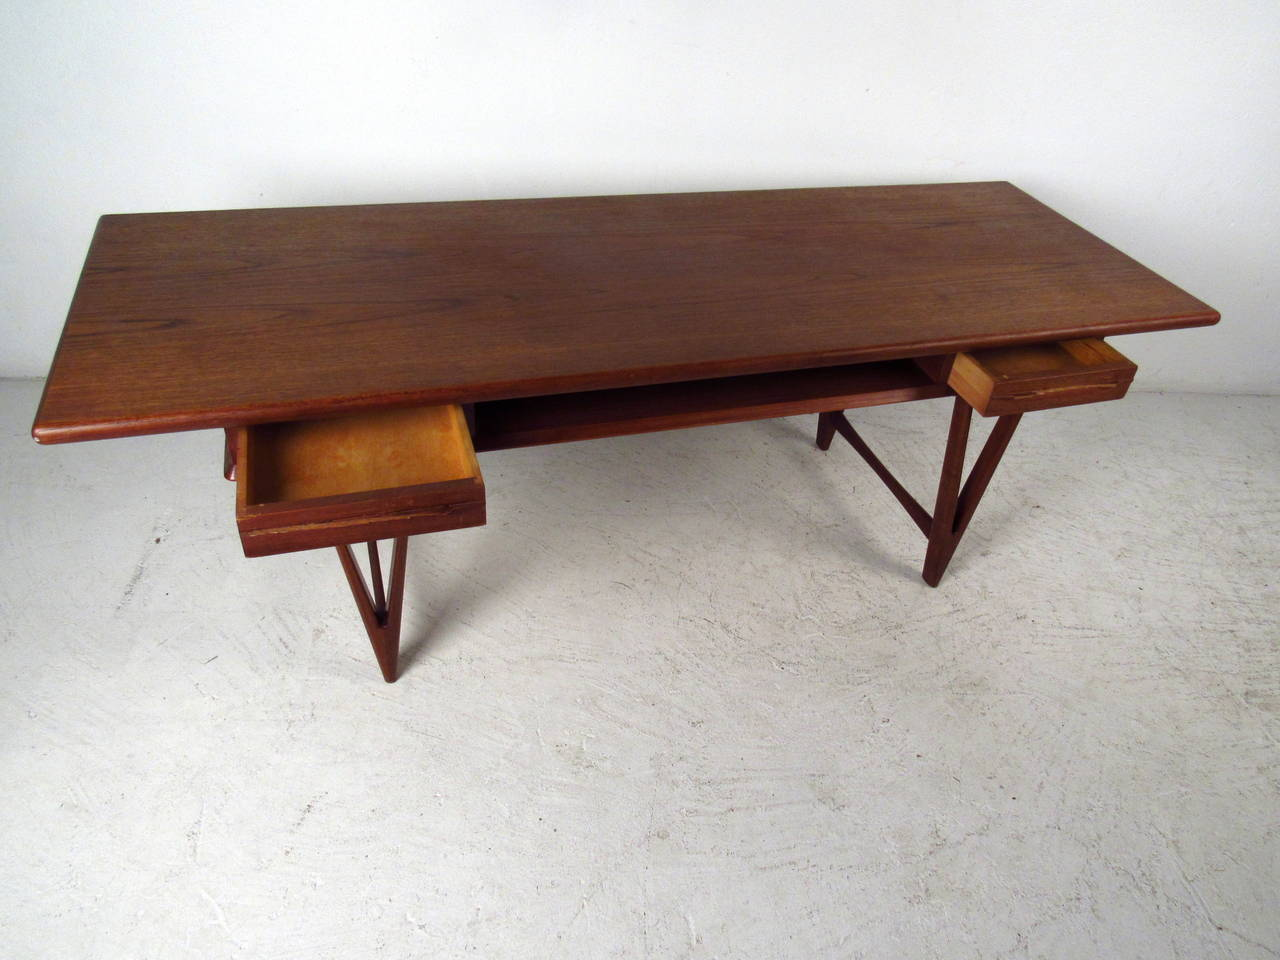 Danish Modern Teak Coffee Table With Two Drawers By E W Bach For Sale At 1stdibs